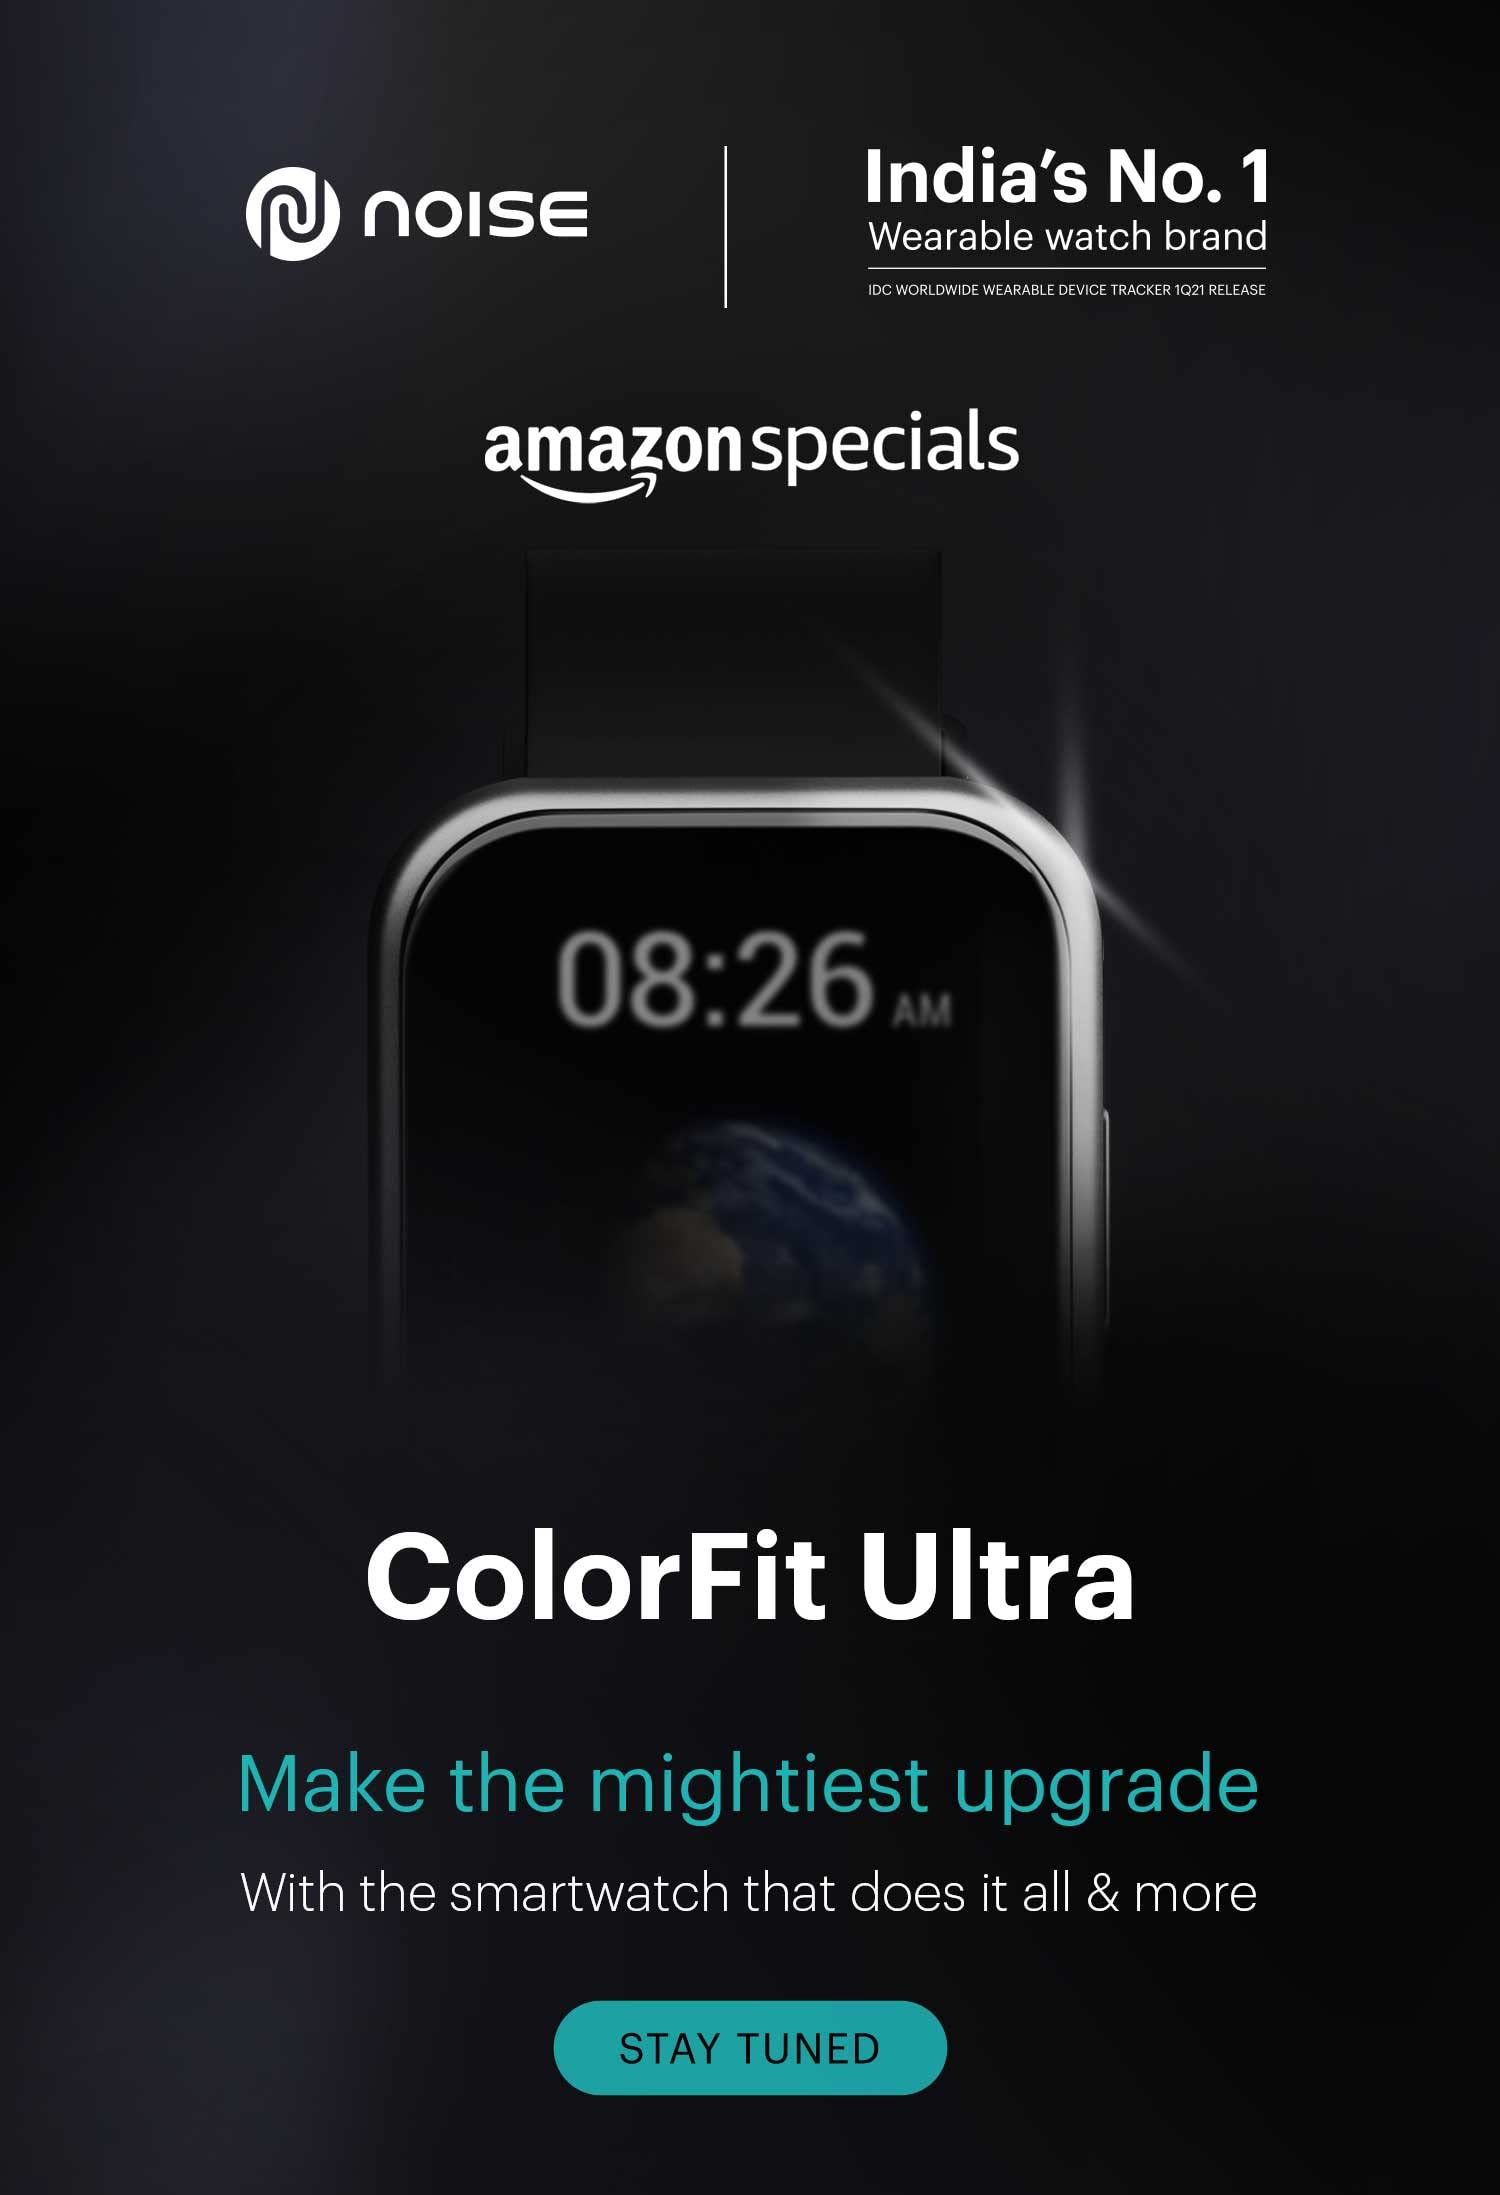 Noise Colorfit Ultra Smartwatch with TruView Display Launching Soon